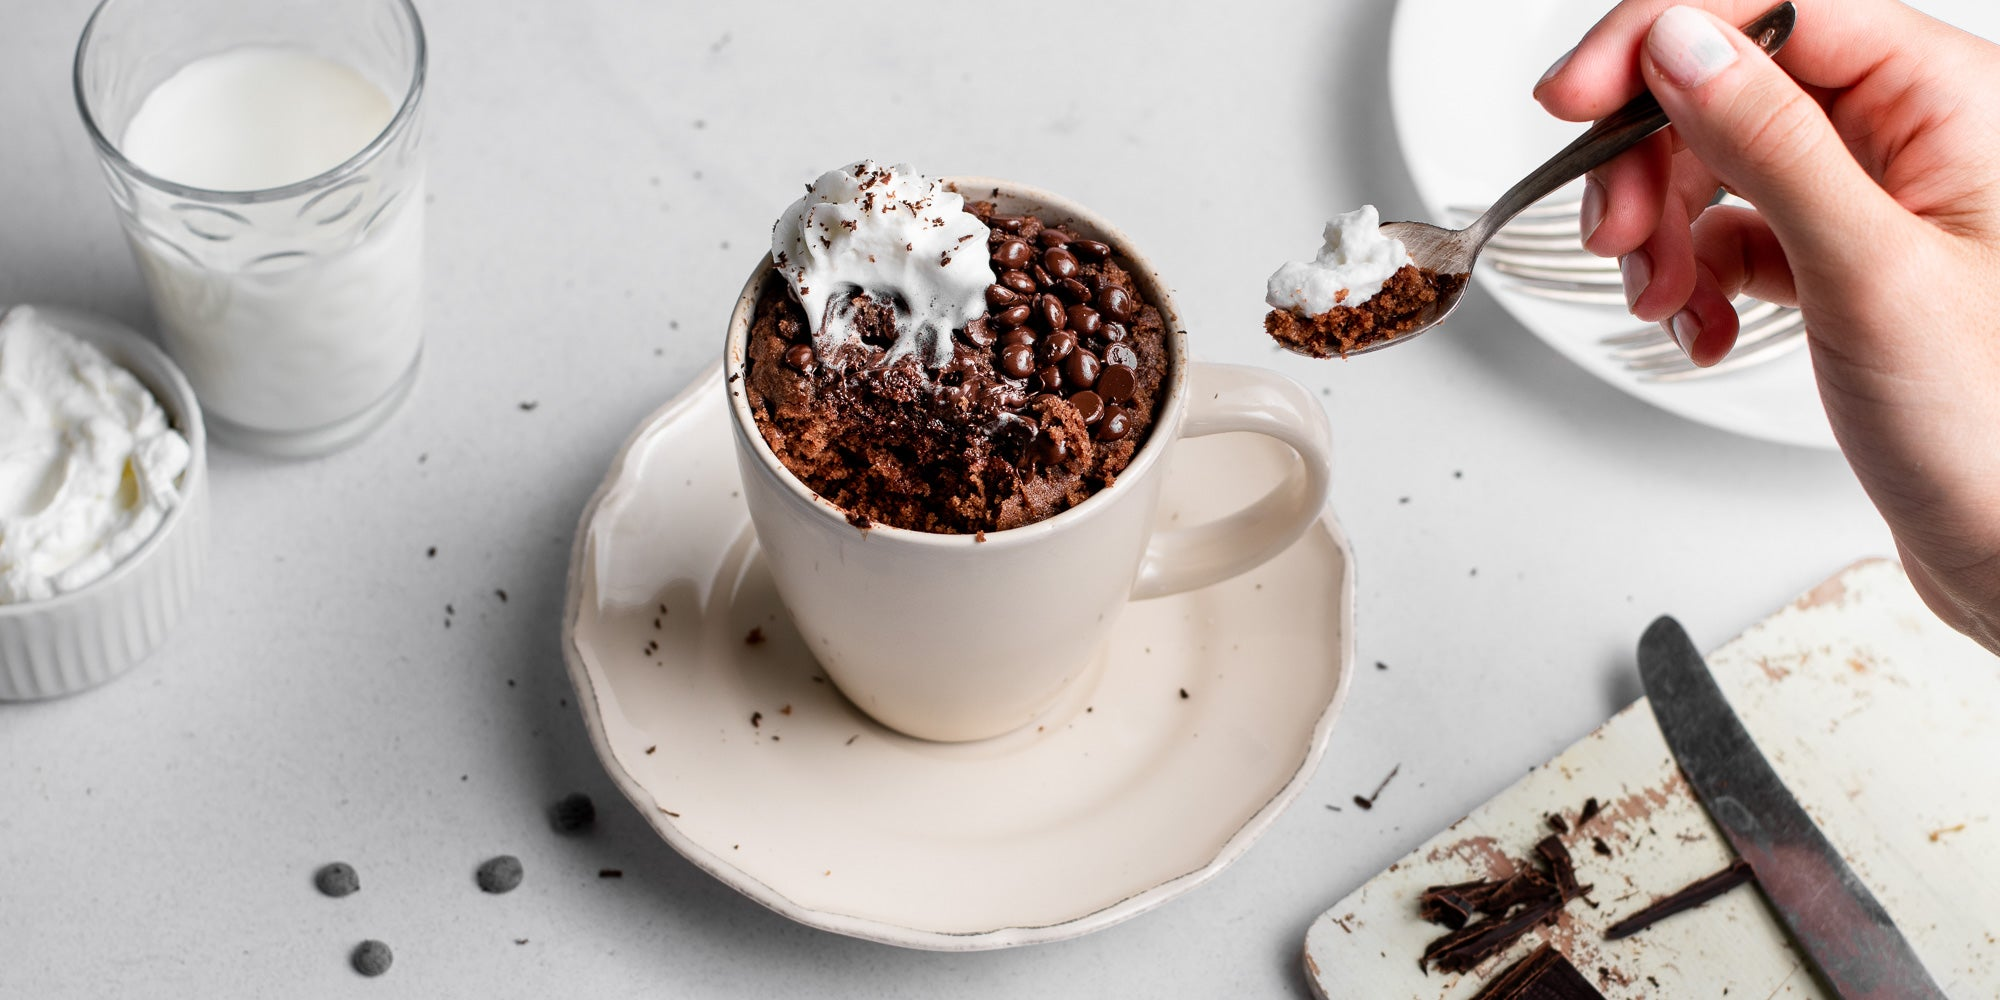 Top view of Chocolate & Peanut Butter Mug Cake with a hand dipping a spoon into the mug cake. Next to a glass of milk, and a ramekin of whipped cream